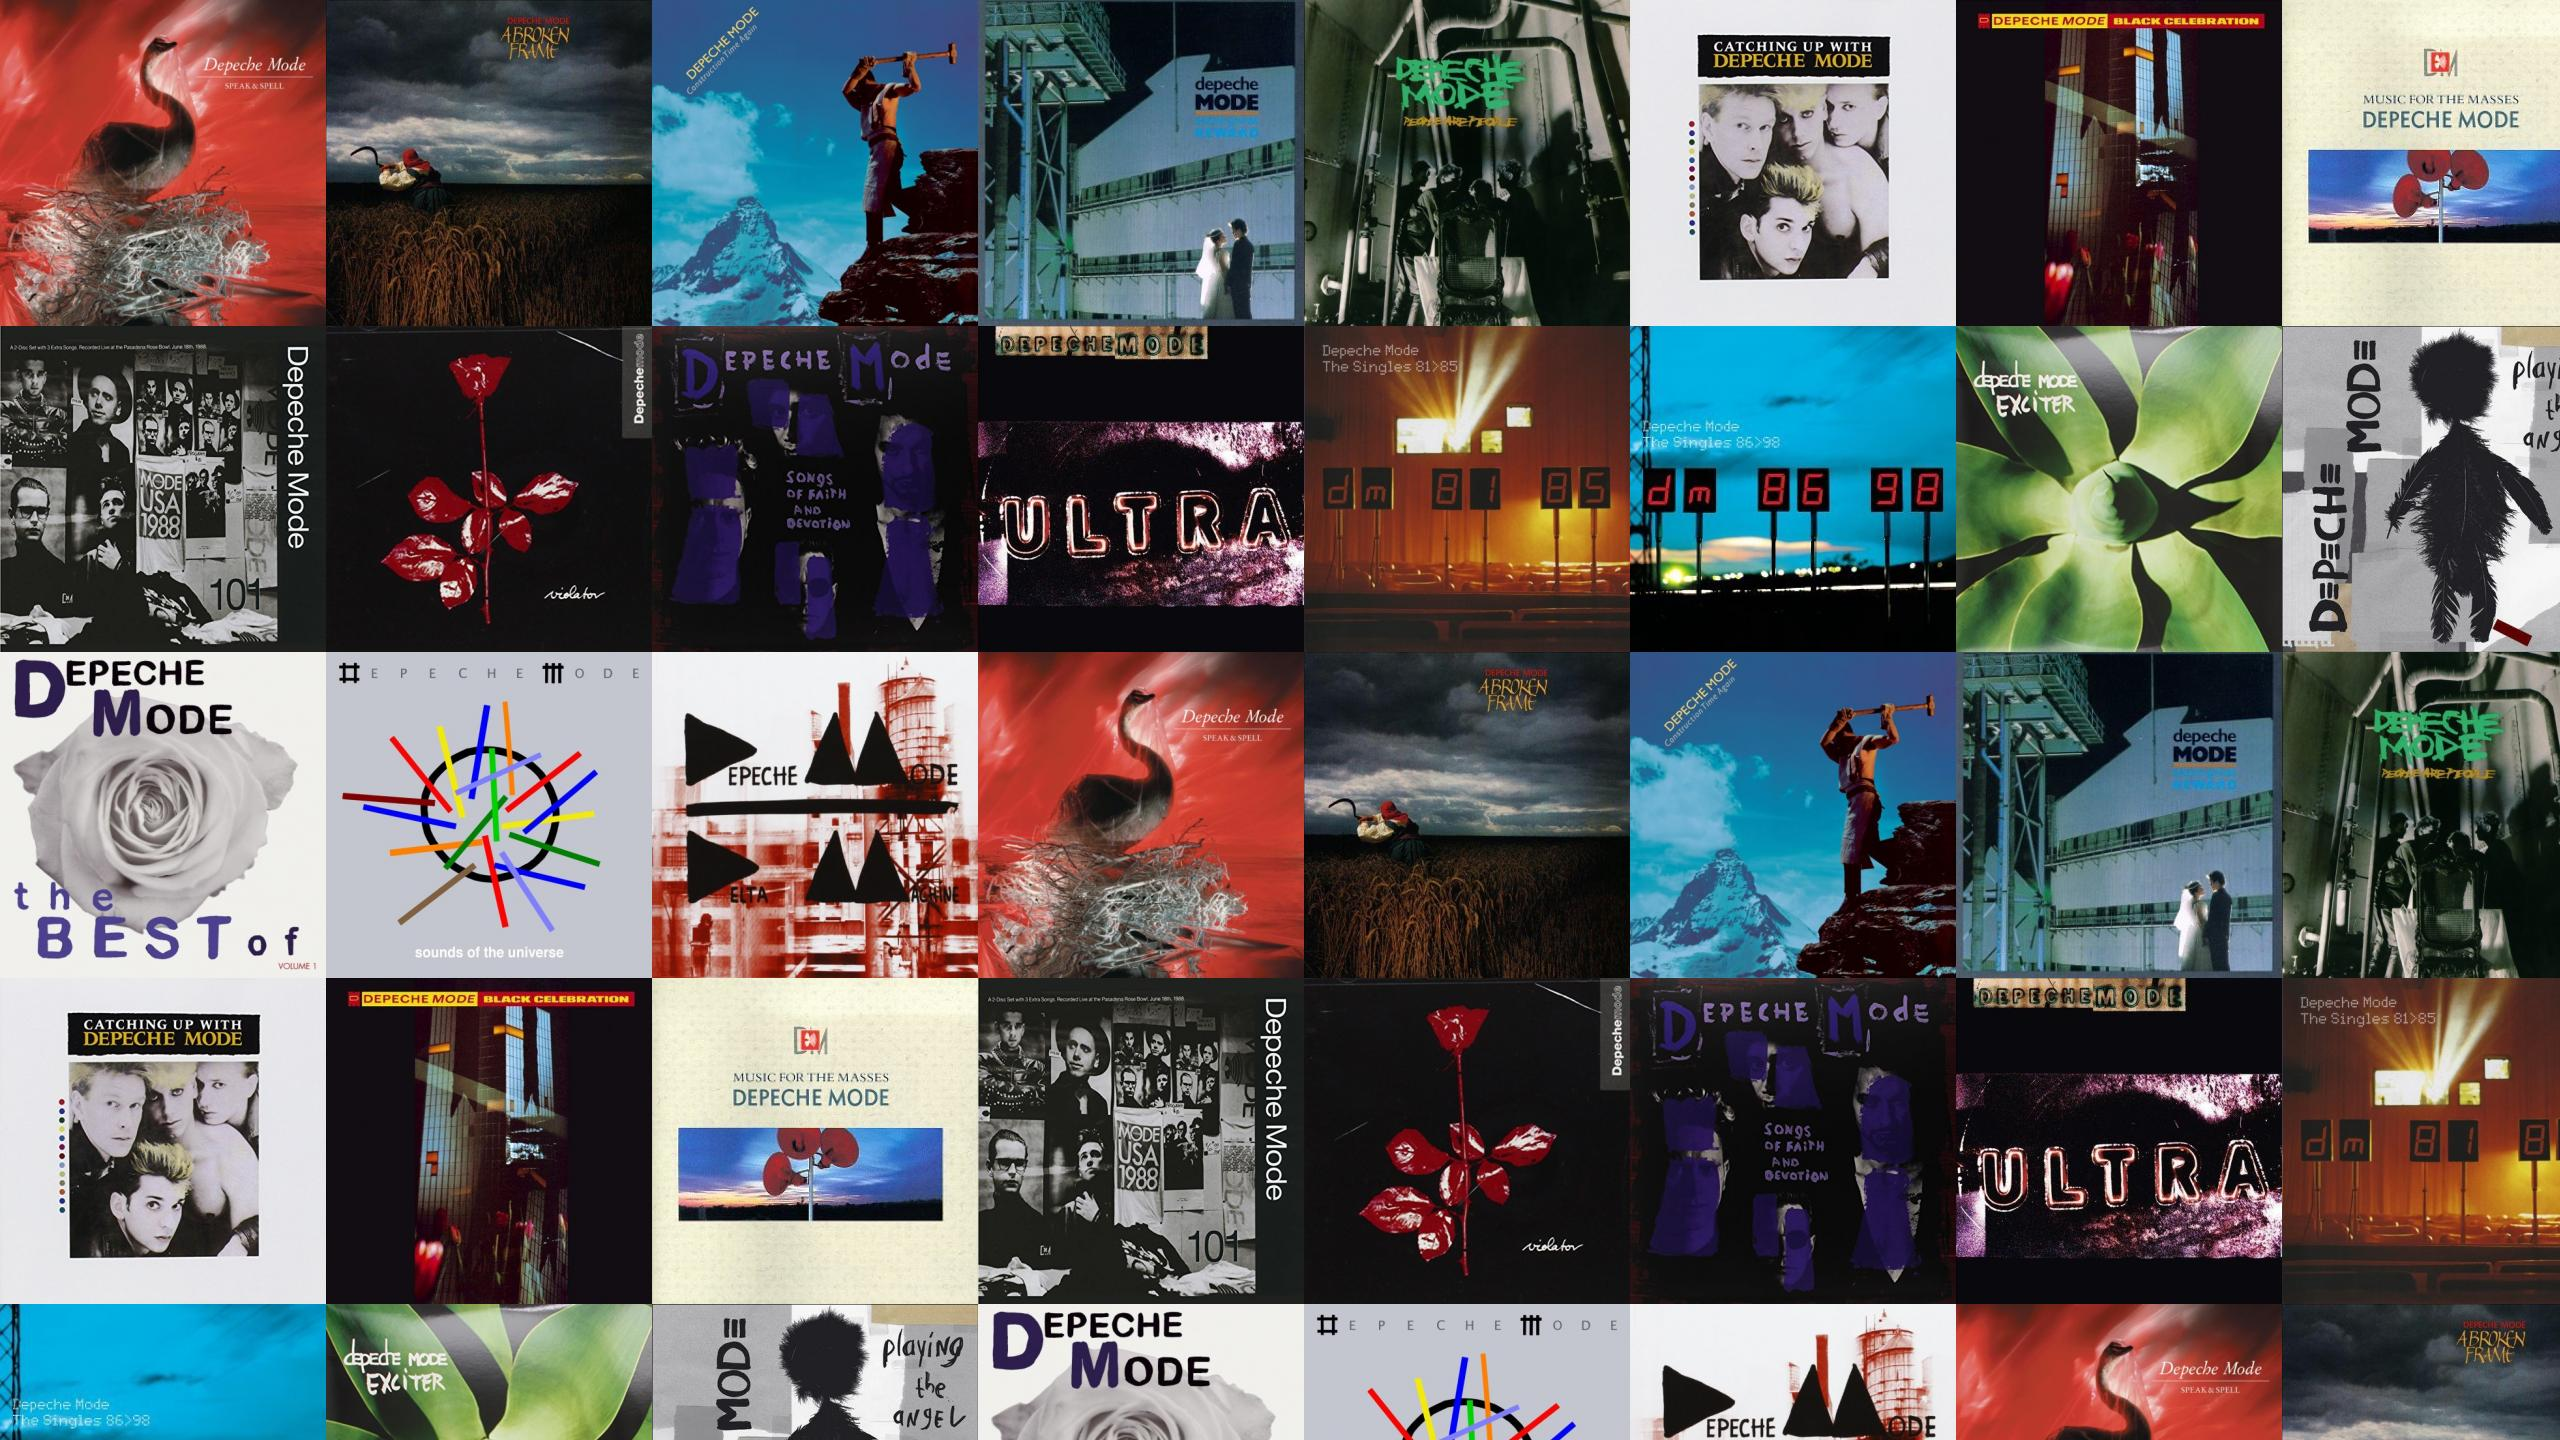 depeche mode all albums download